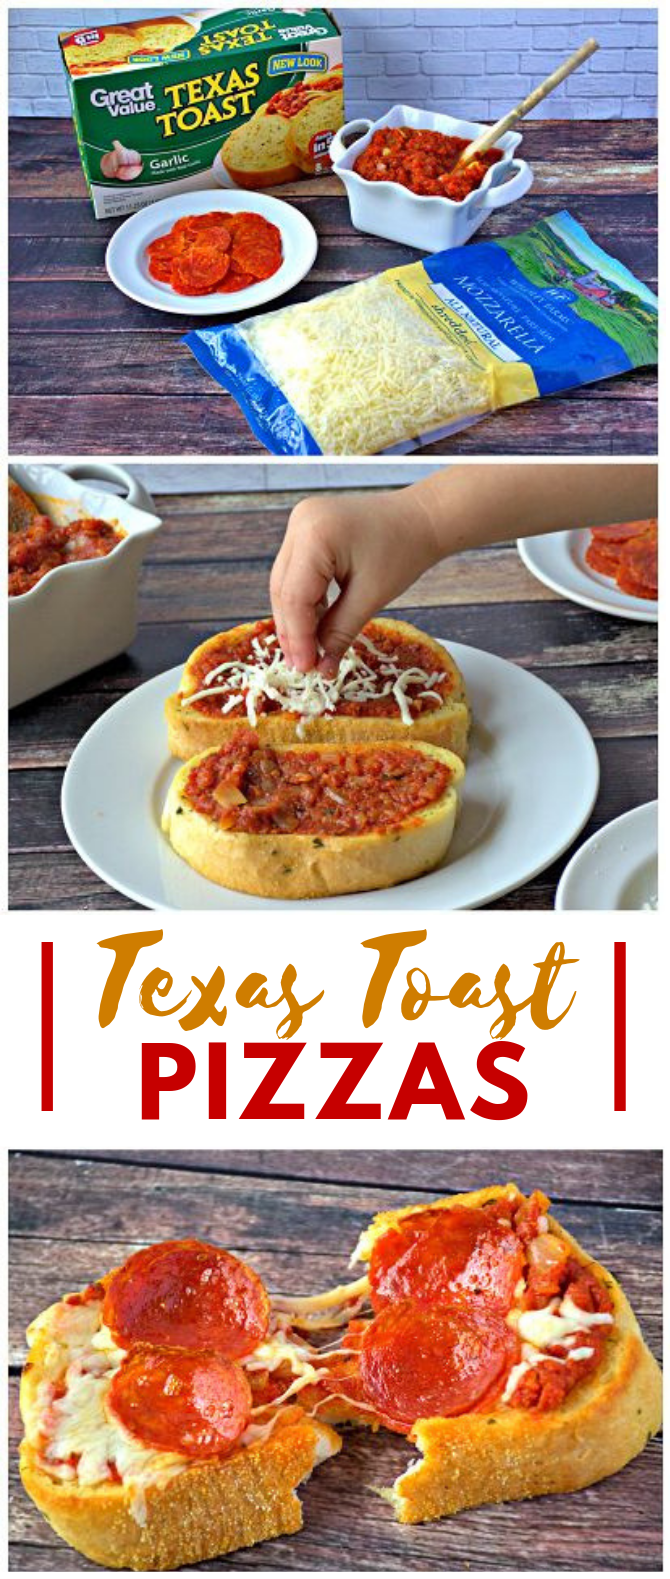 Quick & Easy Texas Toast Pizza Recipe #dinner #lunchidea